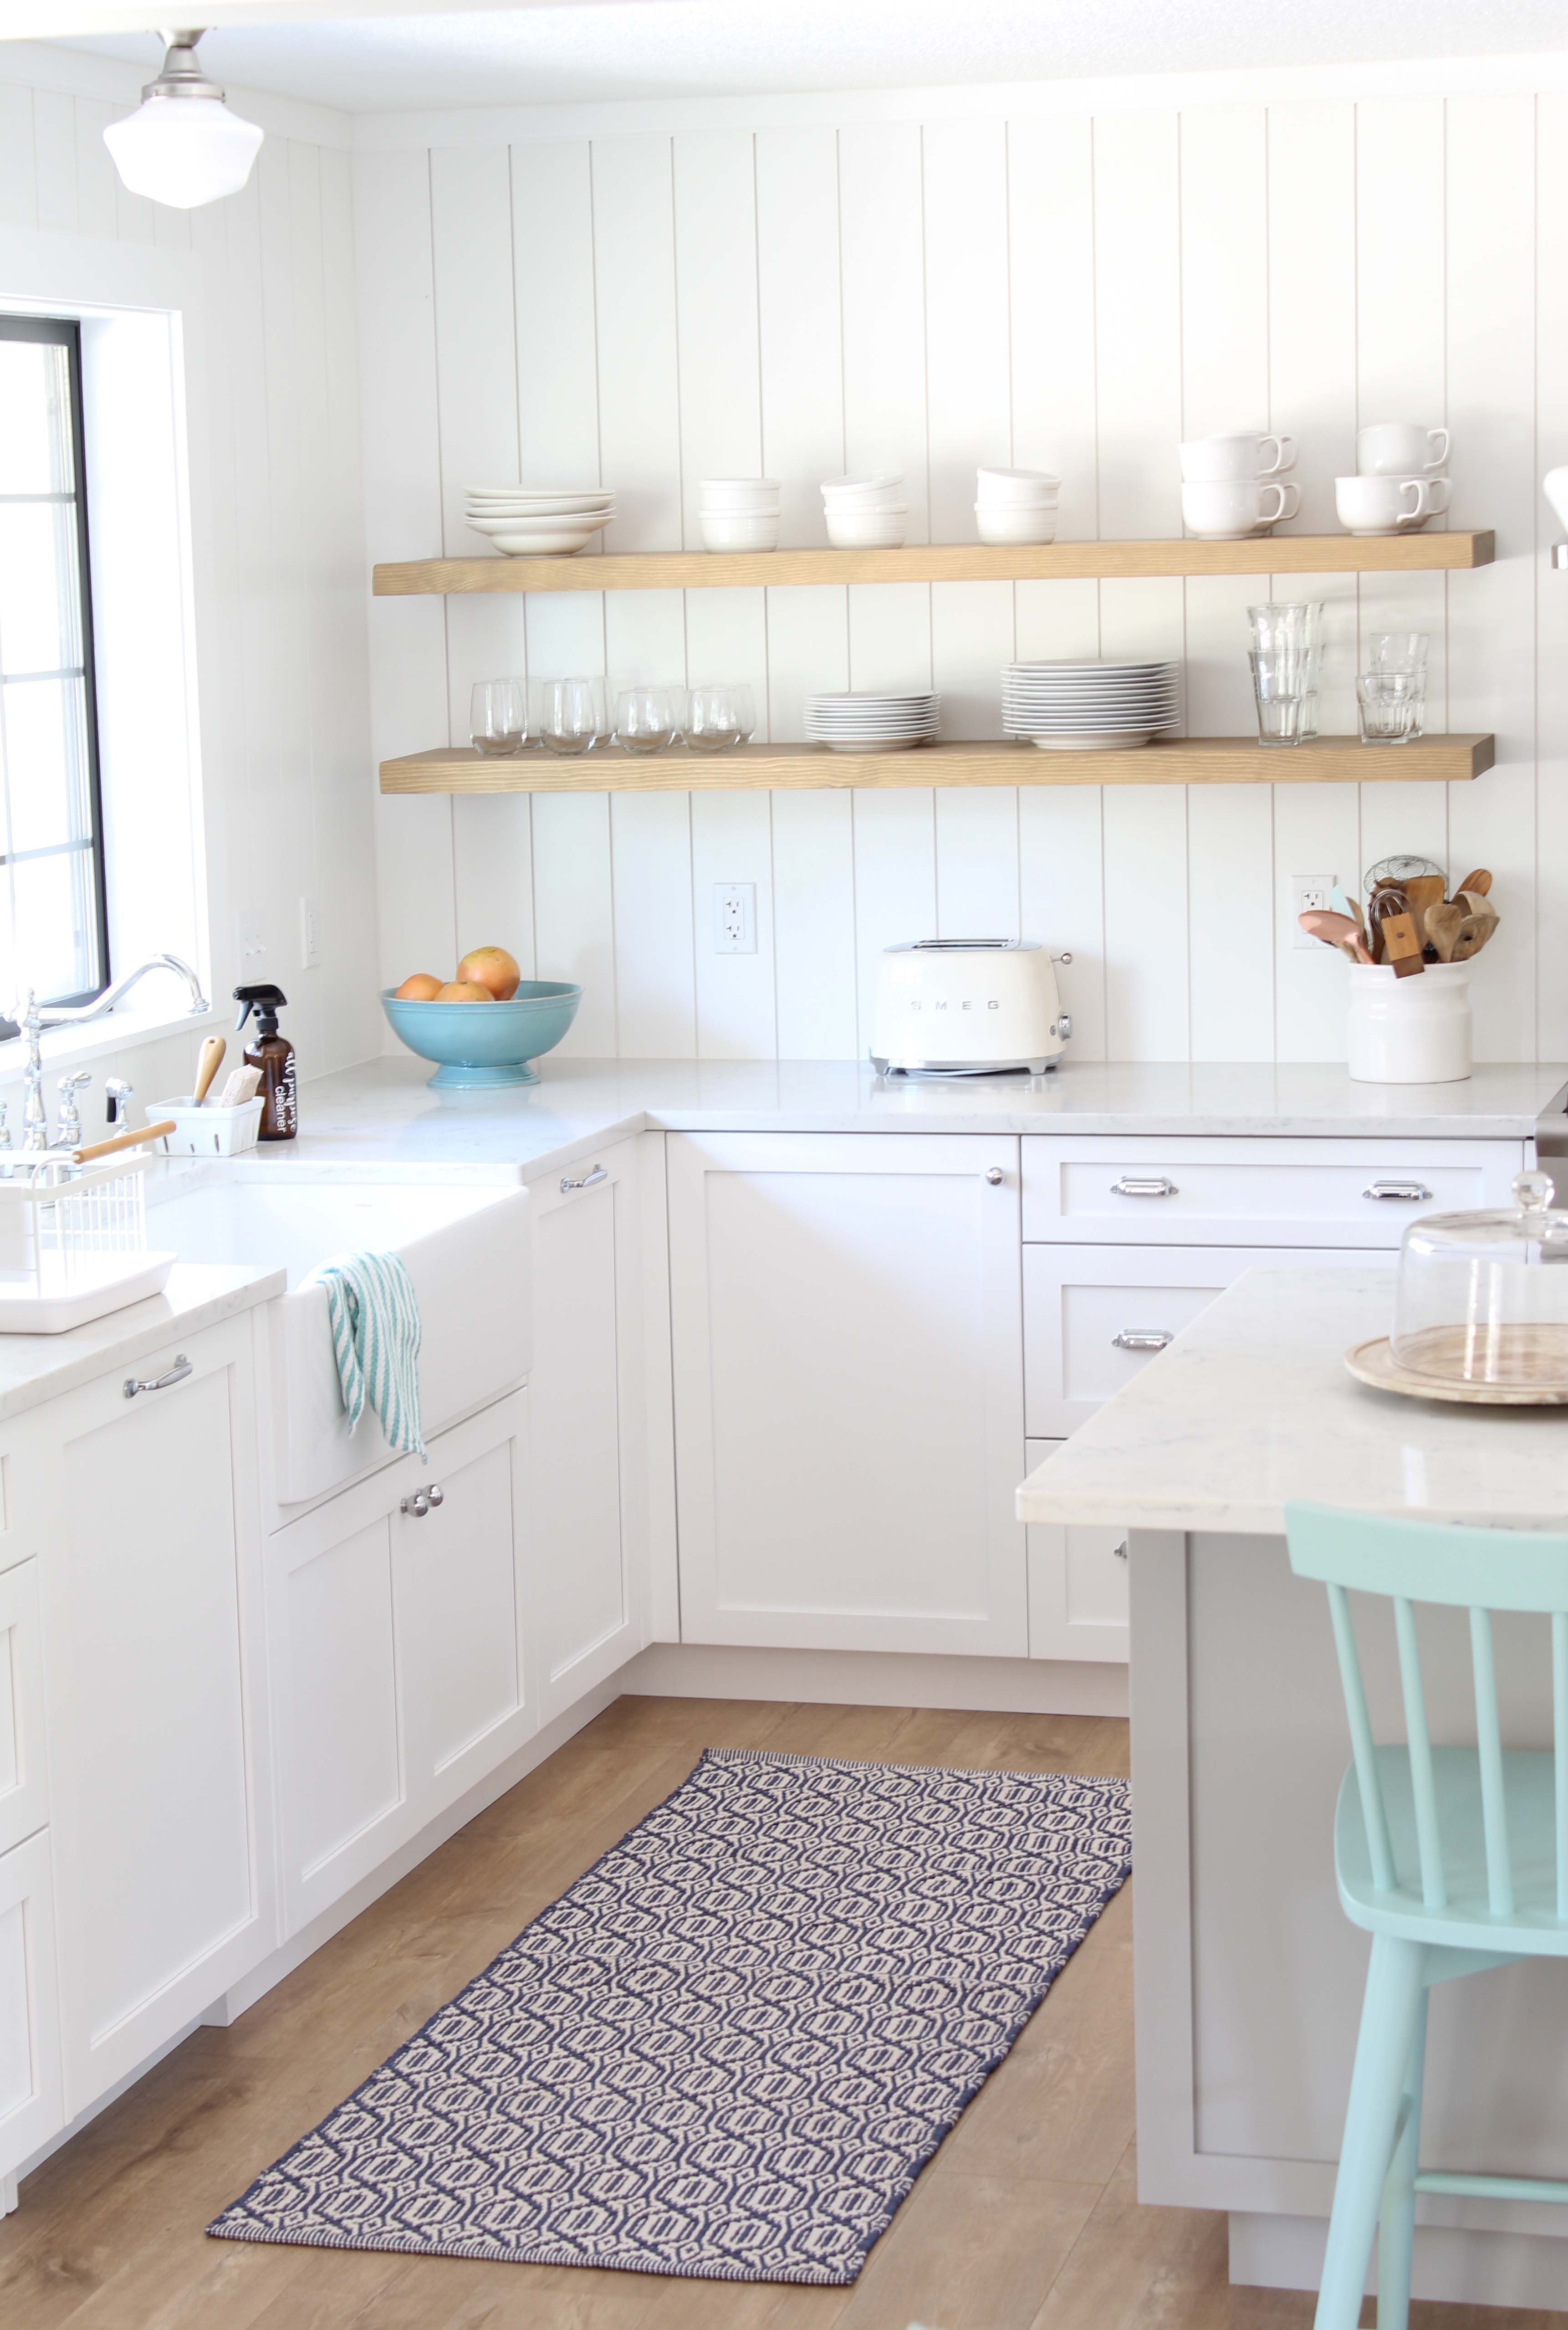 Scandinavian Farmhouse Kitchen Reveal A Nod To Navy In 2020 Shiplap Kitchen Kitchen Remodel Scandinavian Kitchen